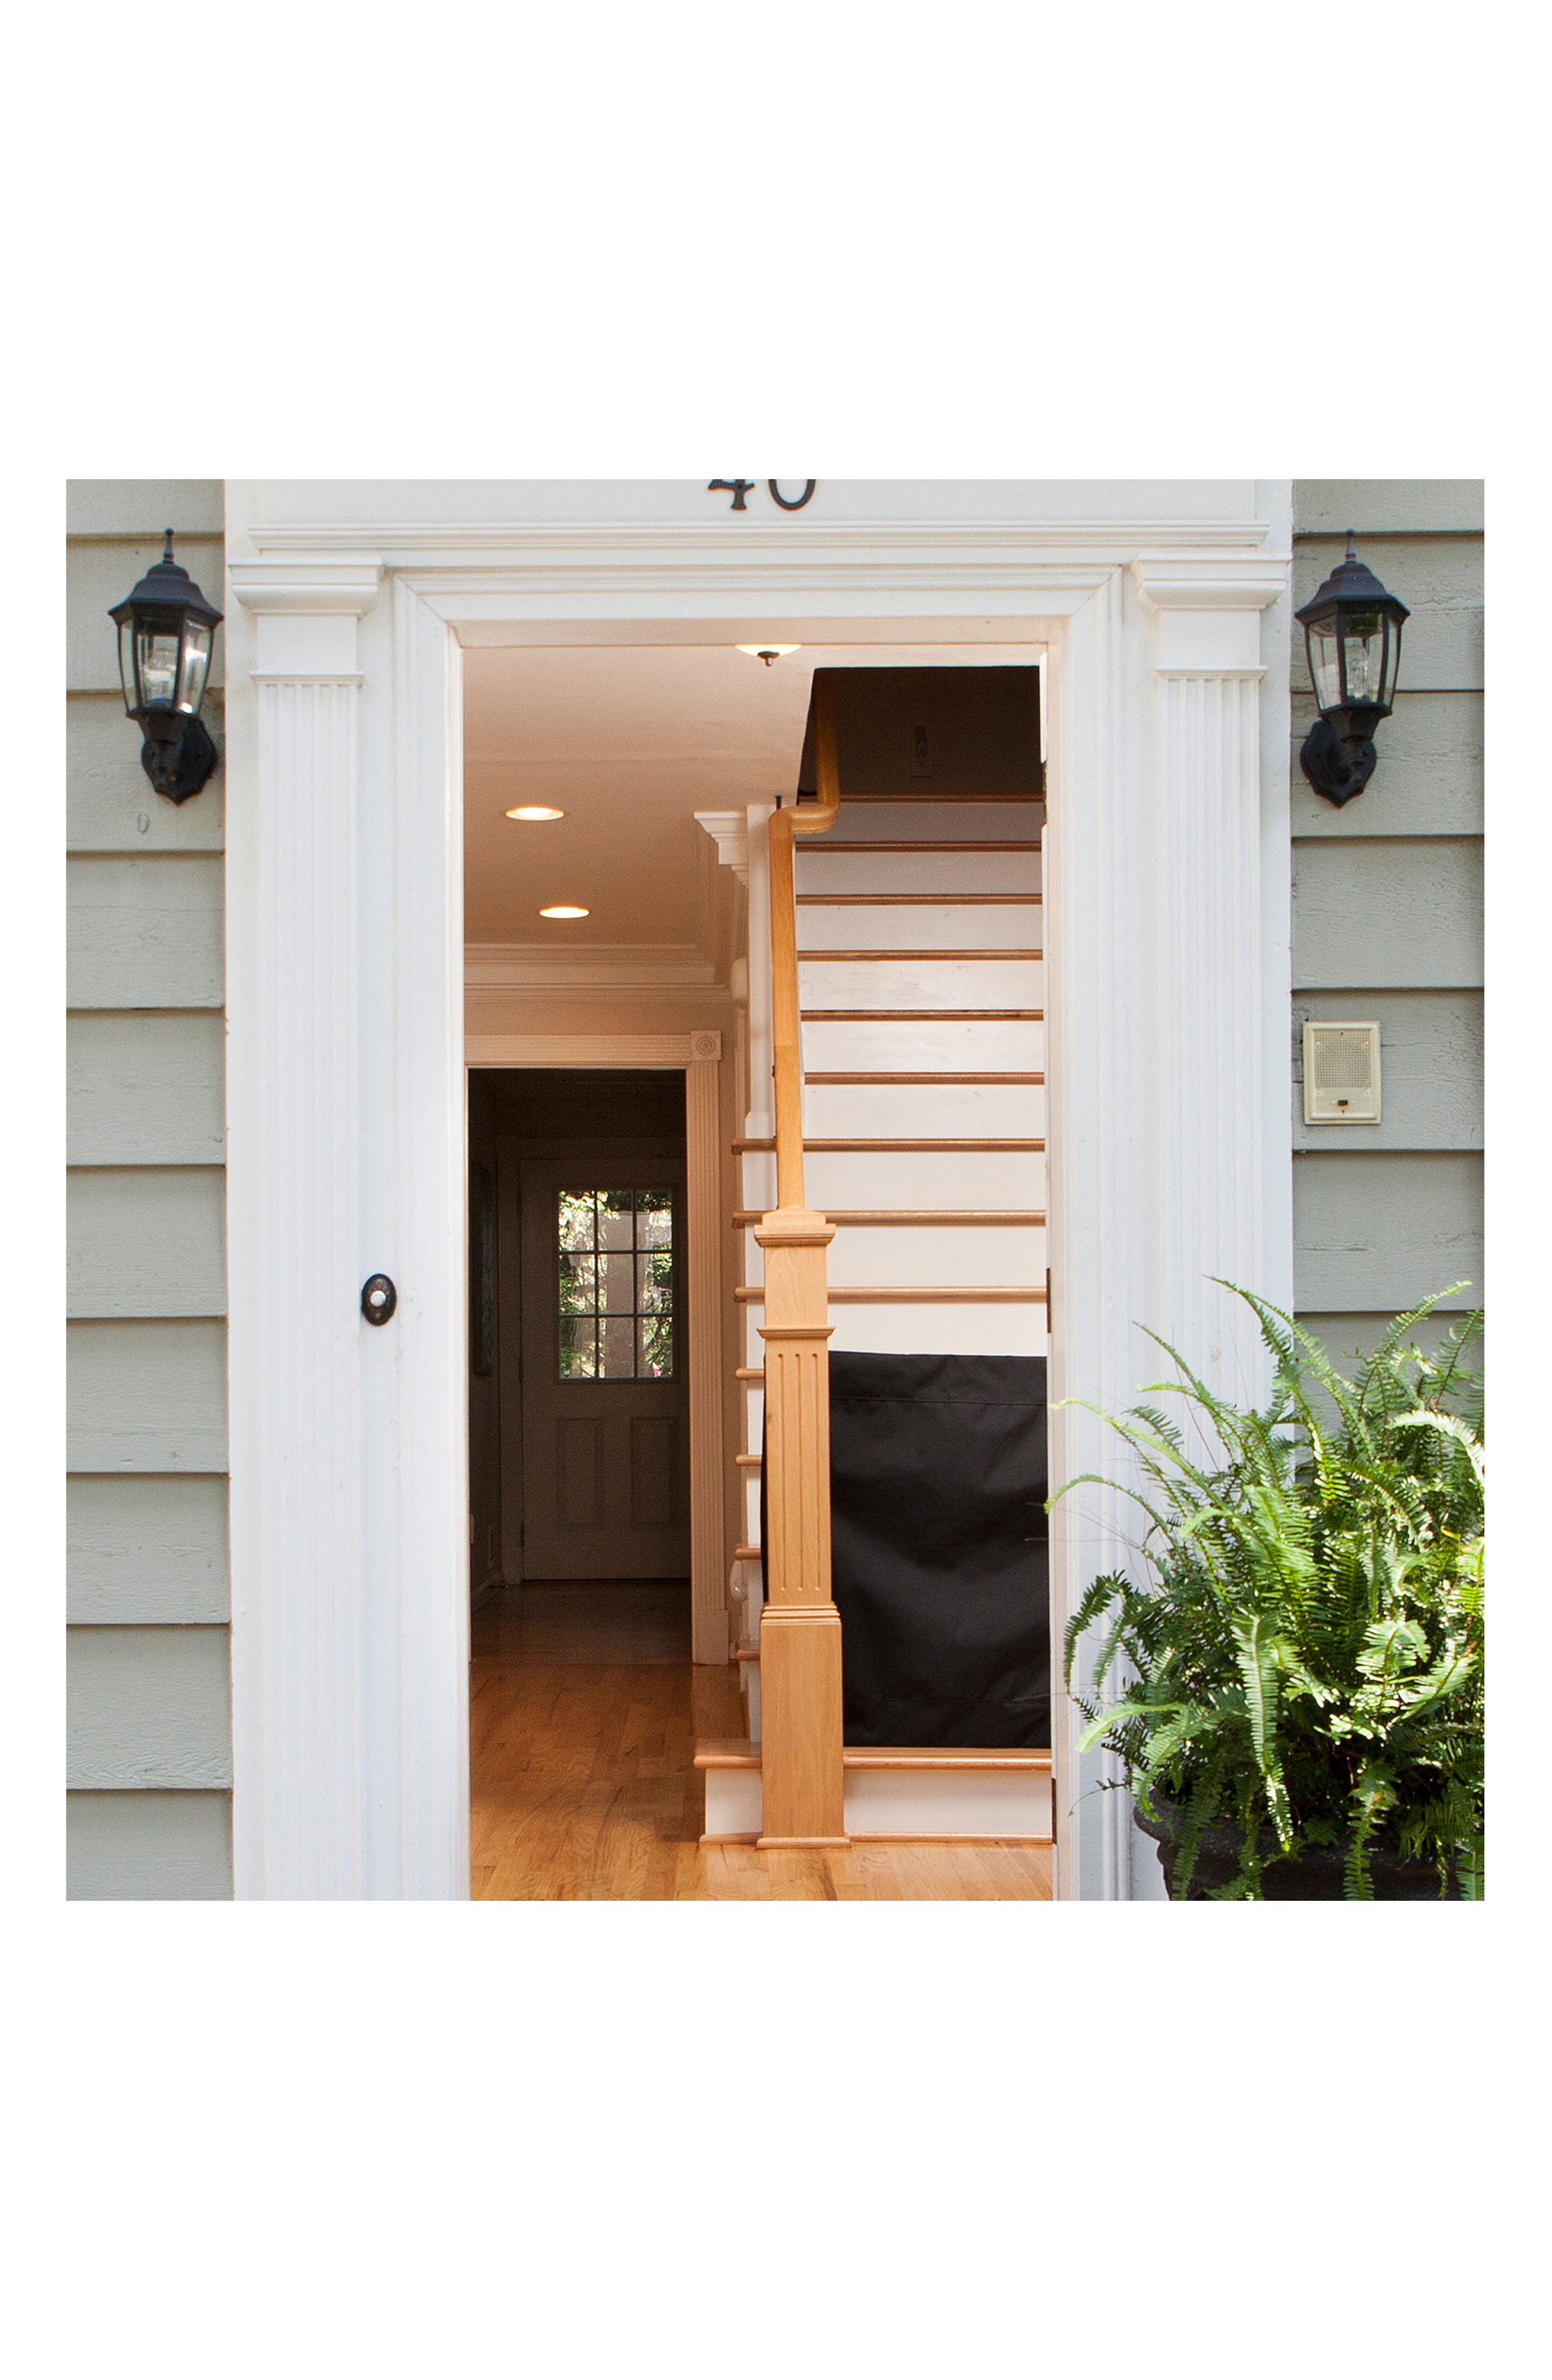 Wall to Banister Indoor Outdoor Safety Gate,                             Alternate thumbnail 6, color,                             002